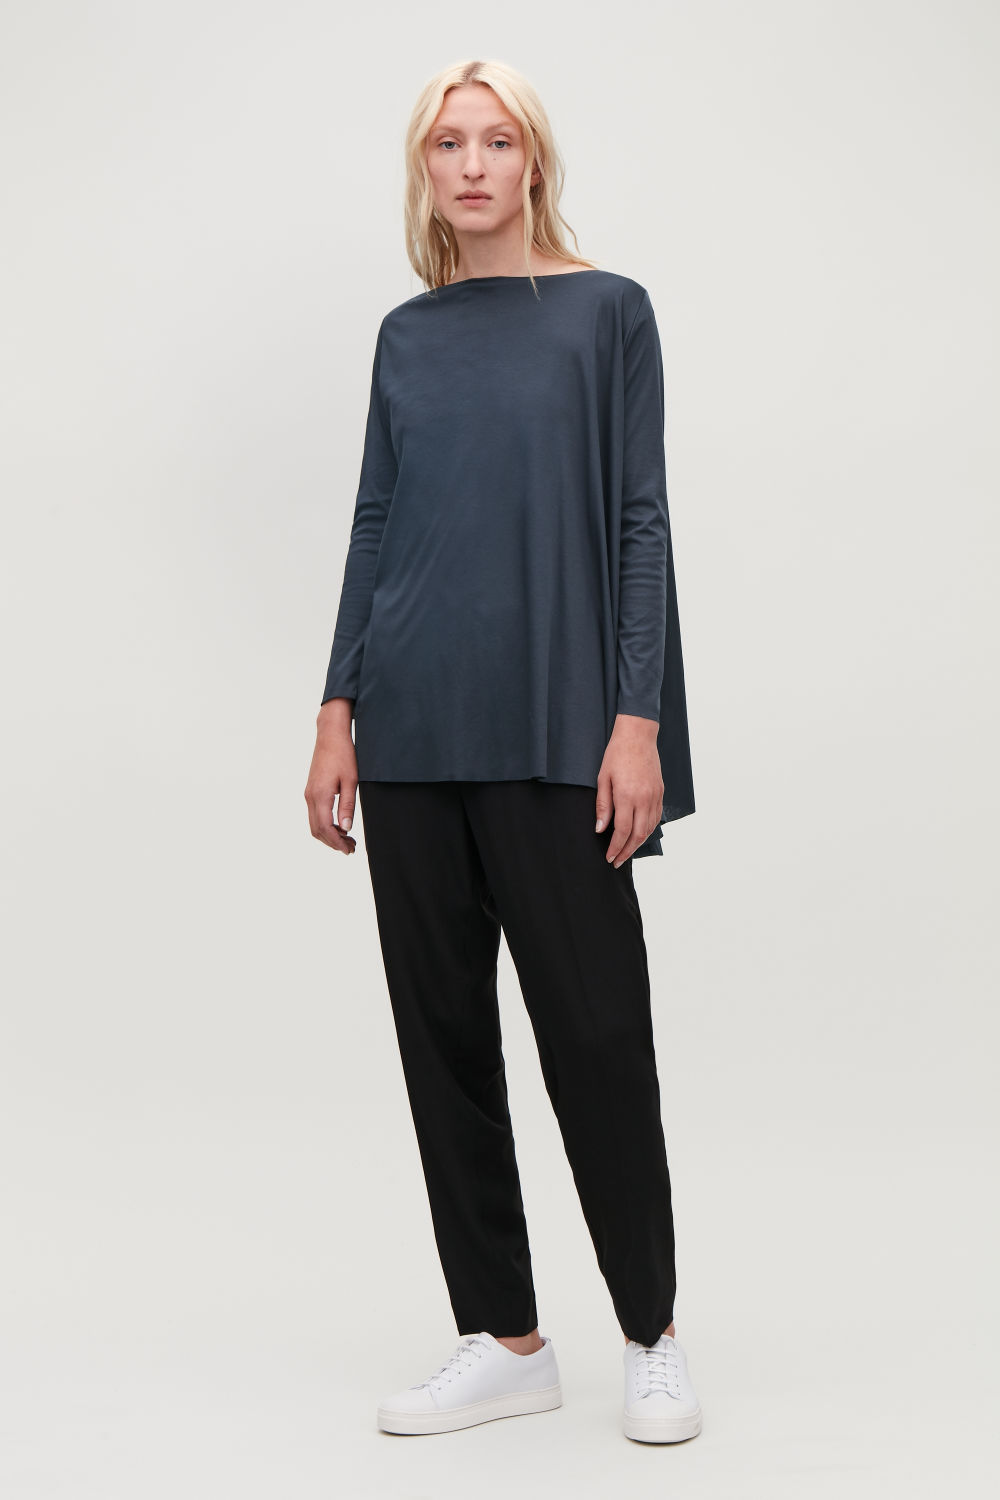 A-LINE TOP WITH TWIST DETAIL